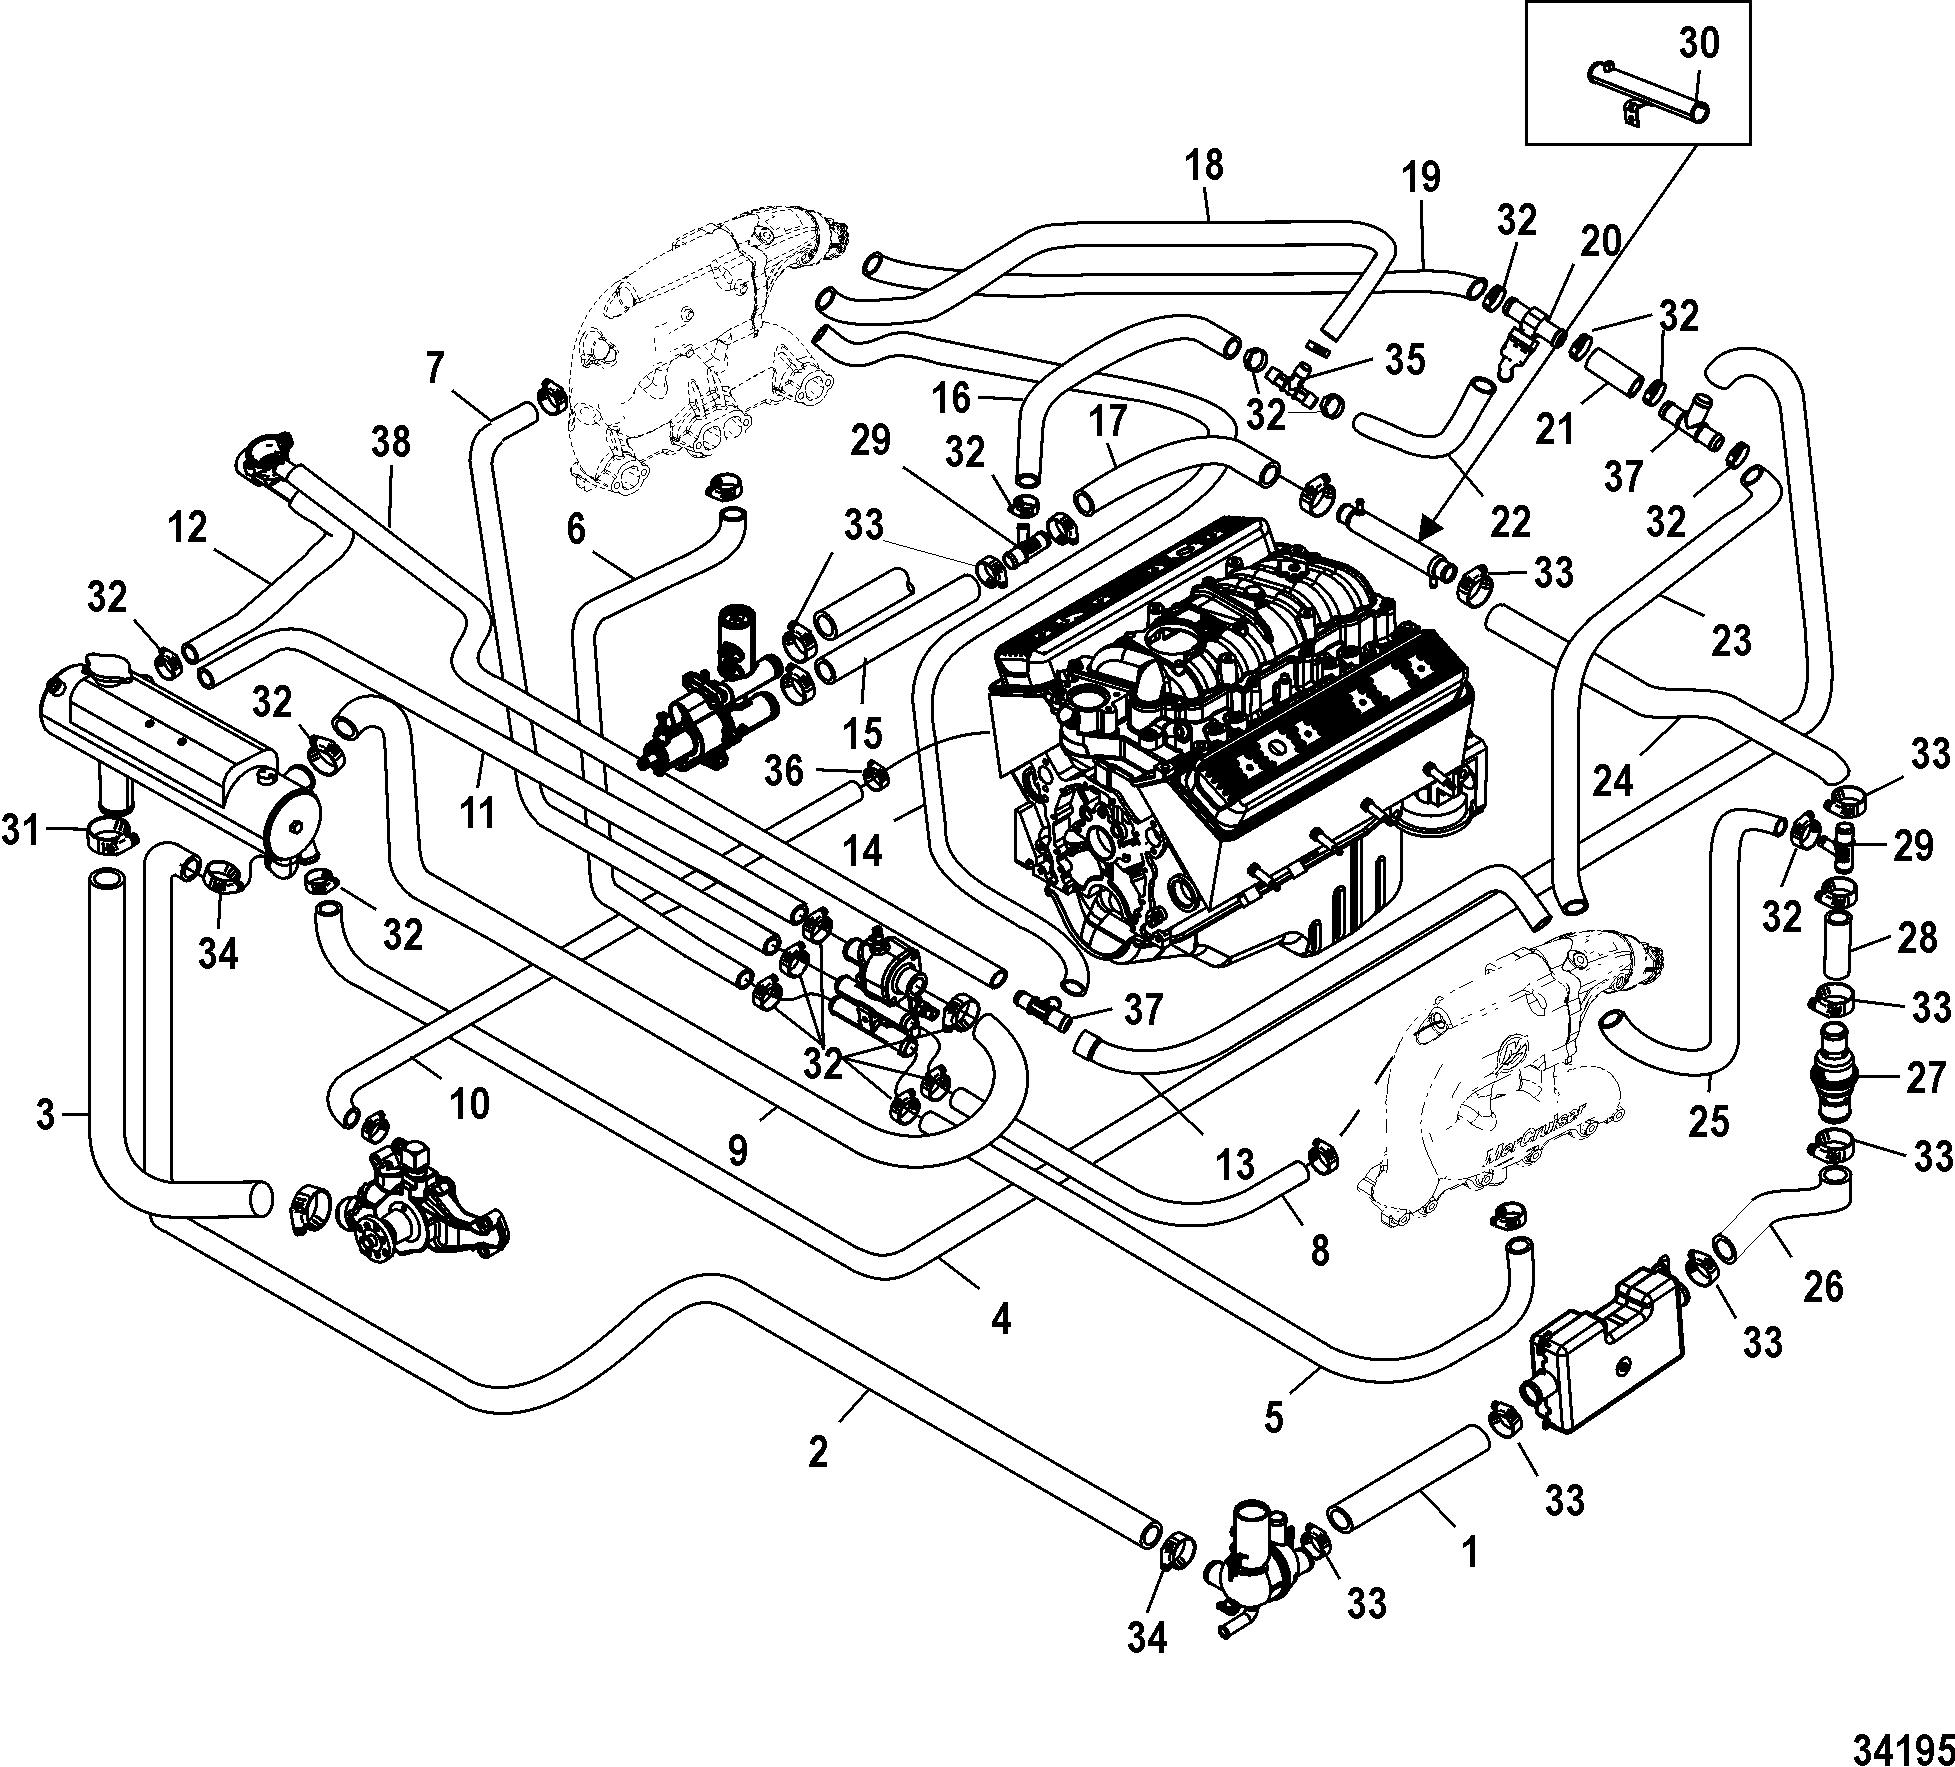 Mercruiser 5 0 Cooling System Diagram Free Wiring For You 2zz Ge Pinout Wire Harness 140 Engine Alpha One 50